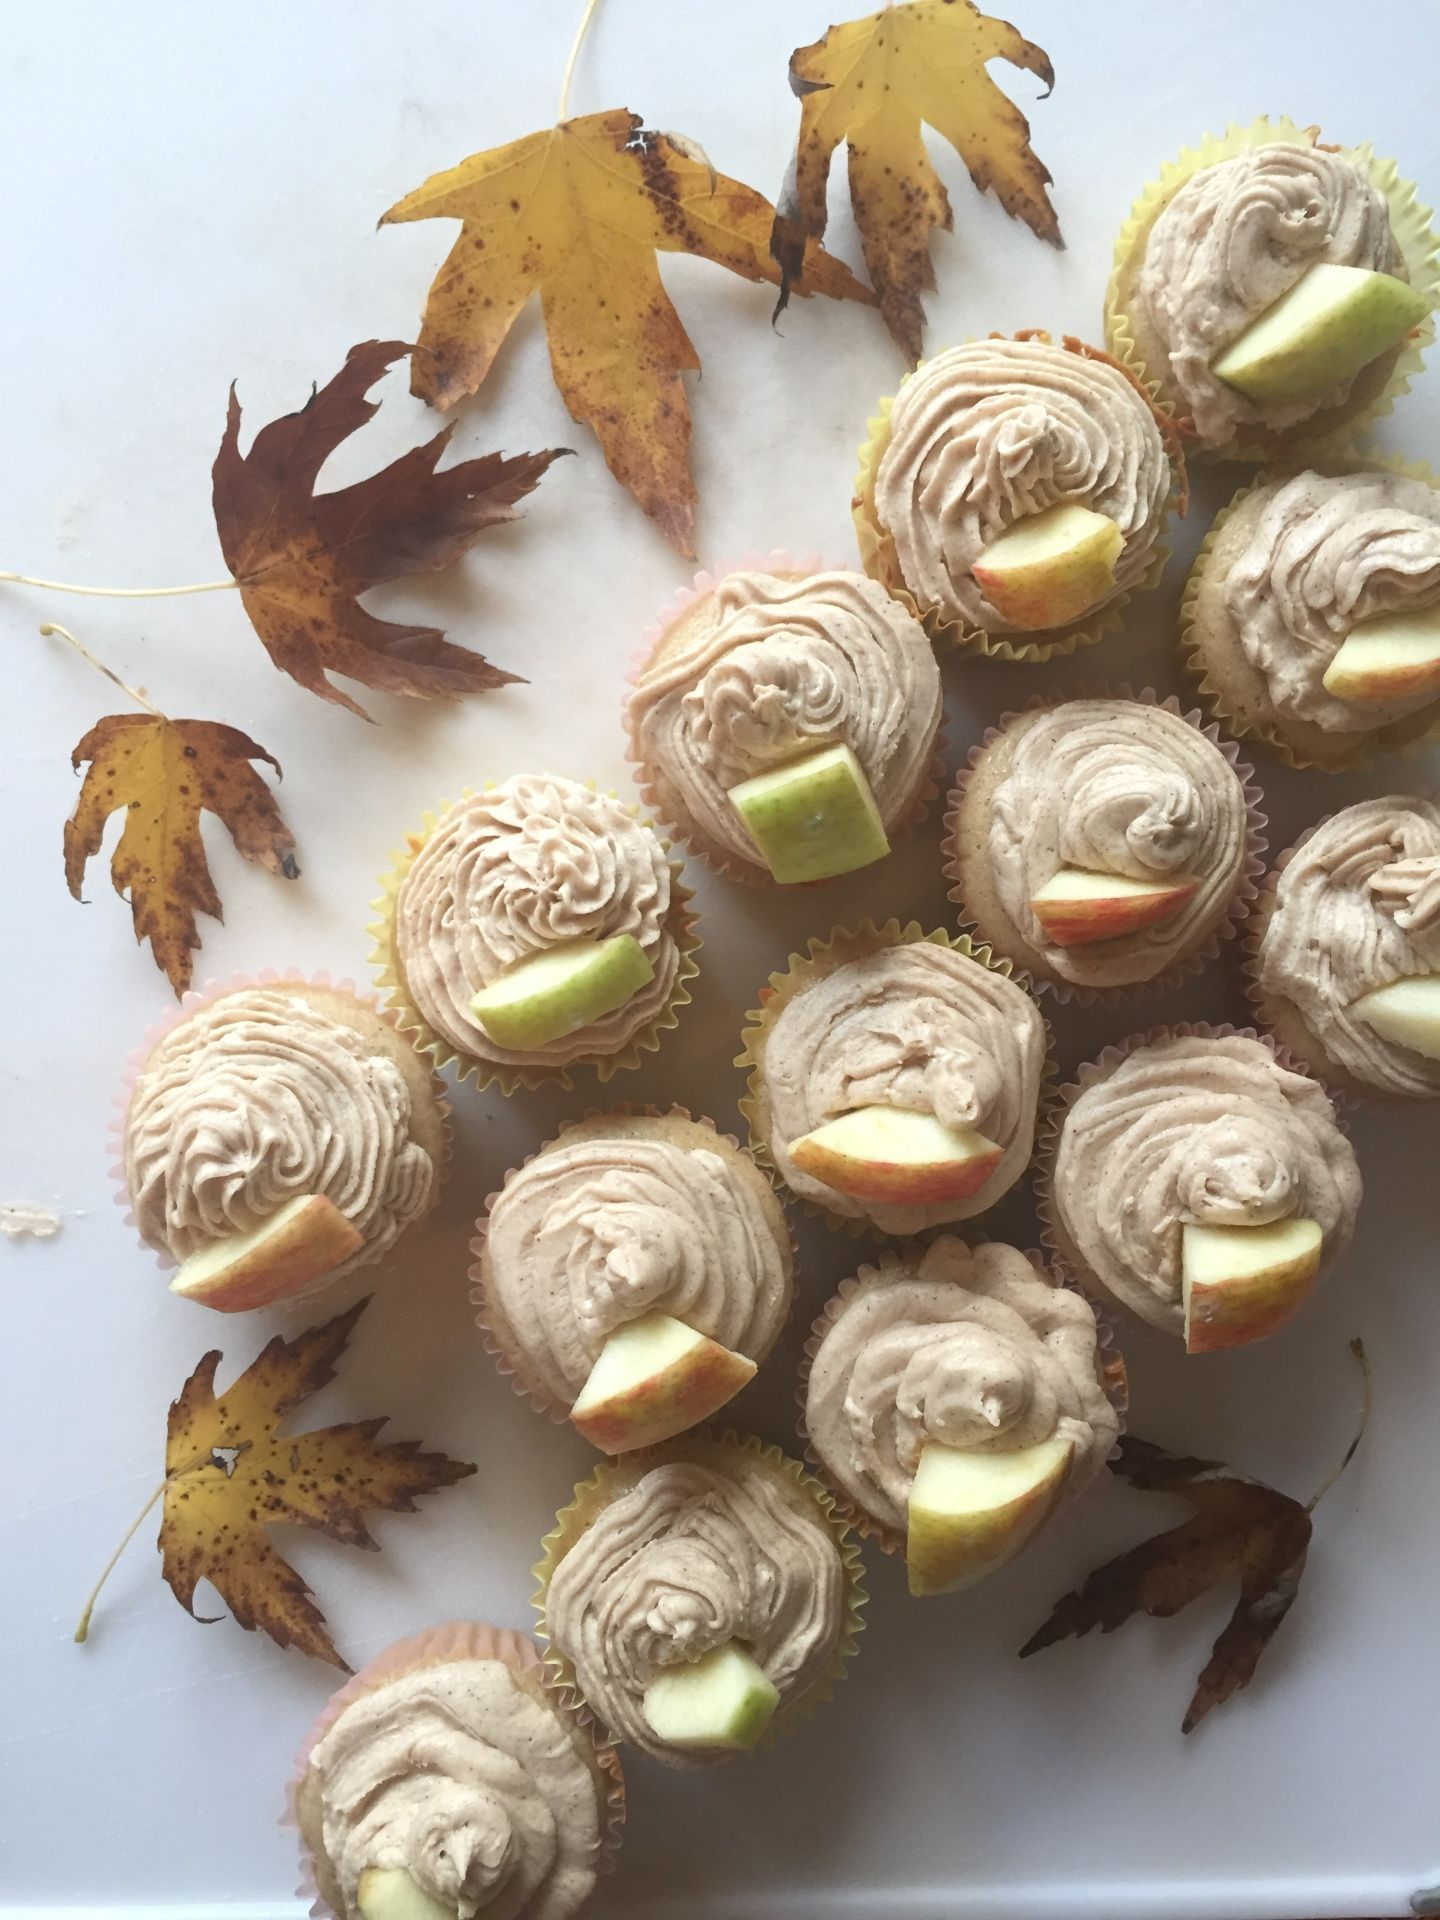 Easy & delicious cupcakes! The perfect fall treat. #apple #applecider #cupcakes #baking #bake #recipe #applecidercupcakeswithbrownsugar Easy & delicious cupcakes! The perfect fall treat. #apple #applecider #cupcakes #baking #bake #recipe #applecidercupcakeswithbrownsugar Easy & delicious cupcakes! The perfect fall treat. #apple #applecider #cupcakes #baking #bake #recipe #applecidercupcakeswithbrownsugar Easy & delicious cupcakes! The perfect fall treat. #apple #applecider #cupcakes #baking #bak #applecidercupcakeswithbrownsugar